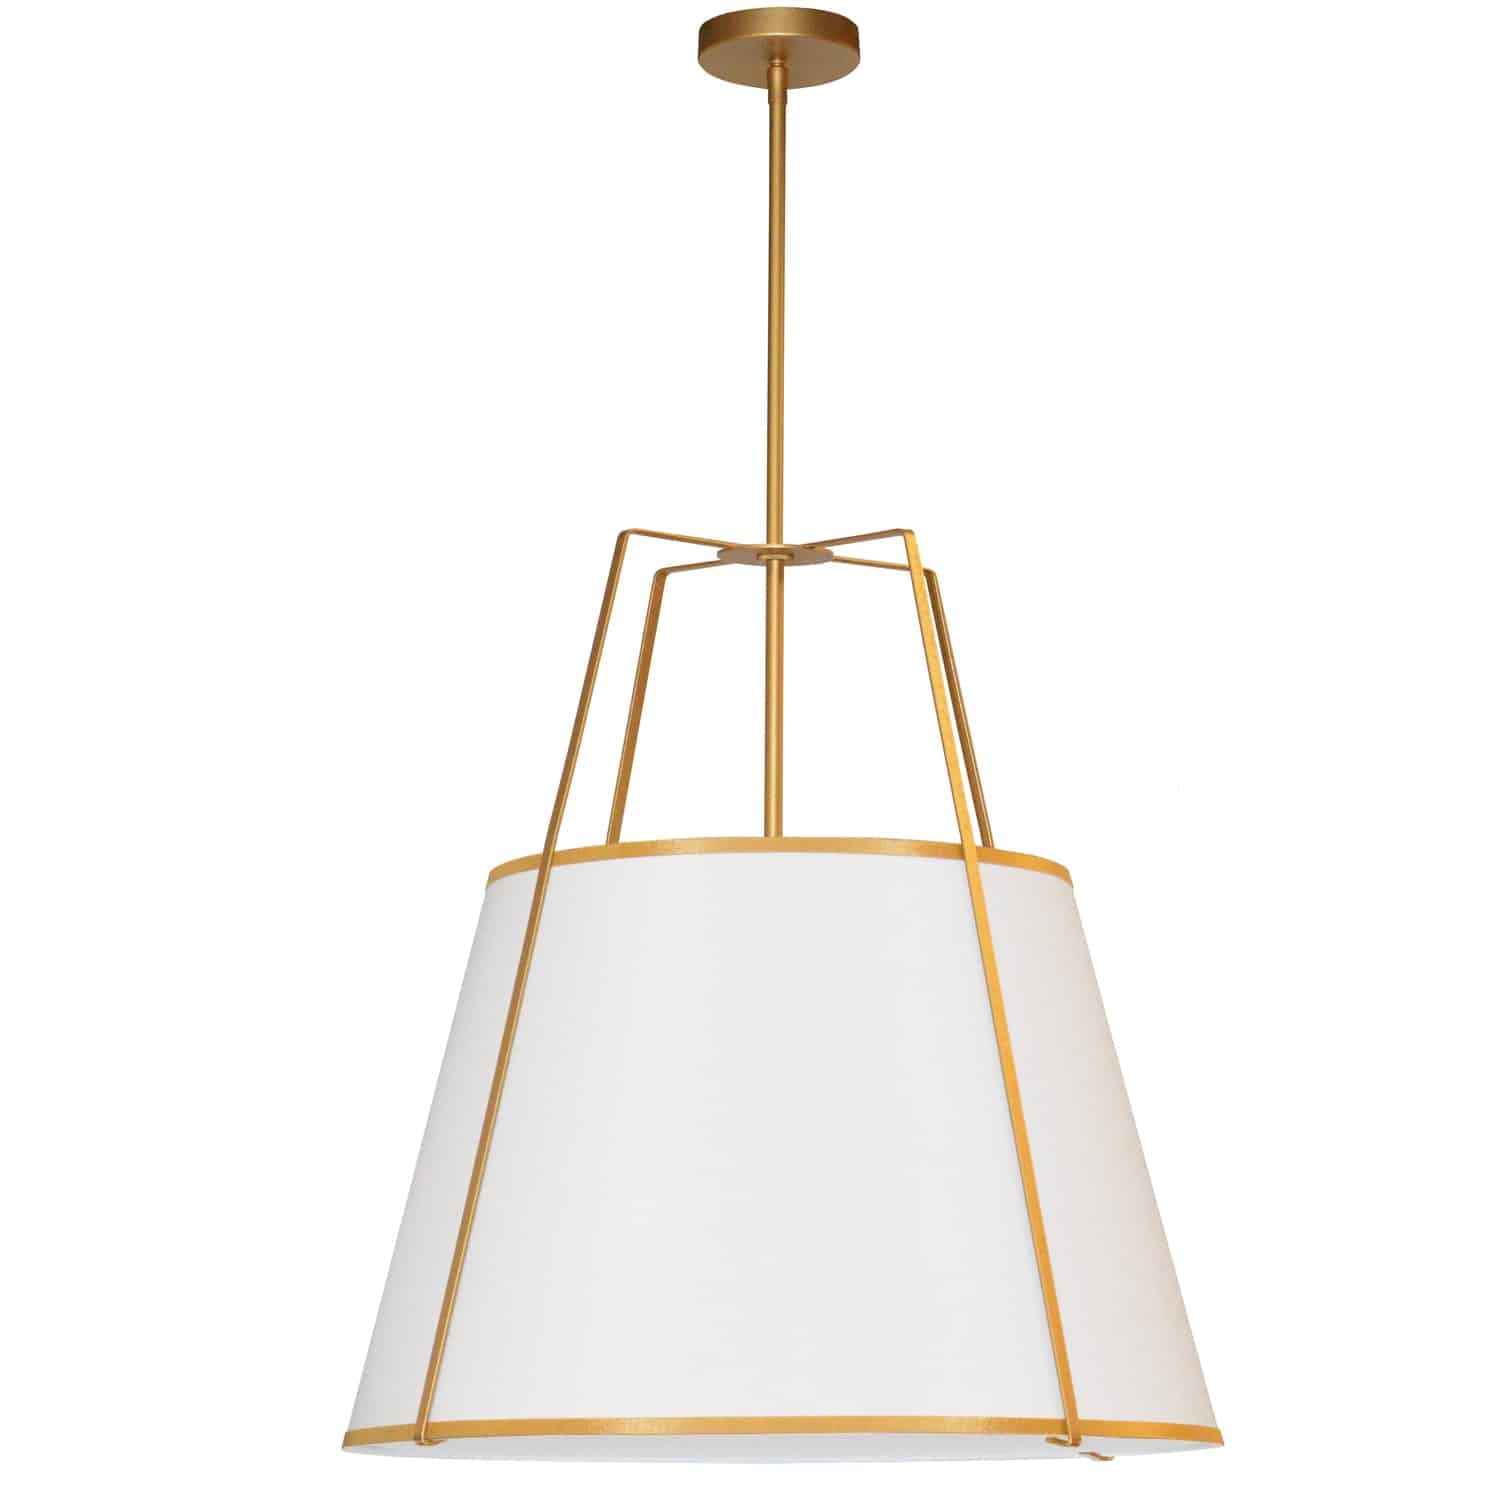 3 Light Trapezoid Pendant Gold frame and White Shade w/790 Diffuser